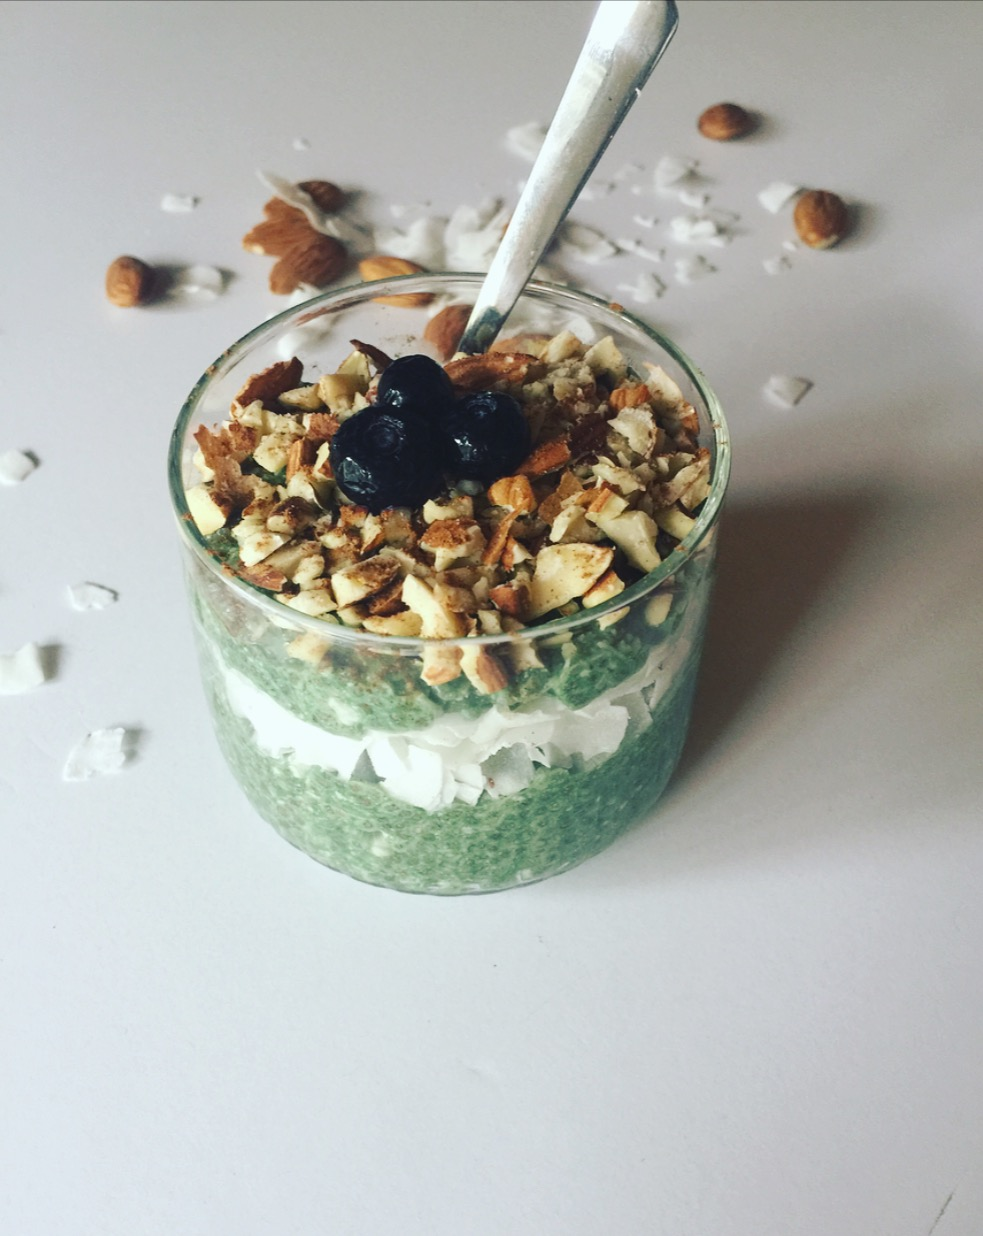 Chia Pudding made with my favorite Greens Blend. Added chopped almonds, unsweetened coconut flakes and blueberries.